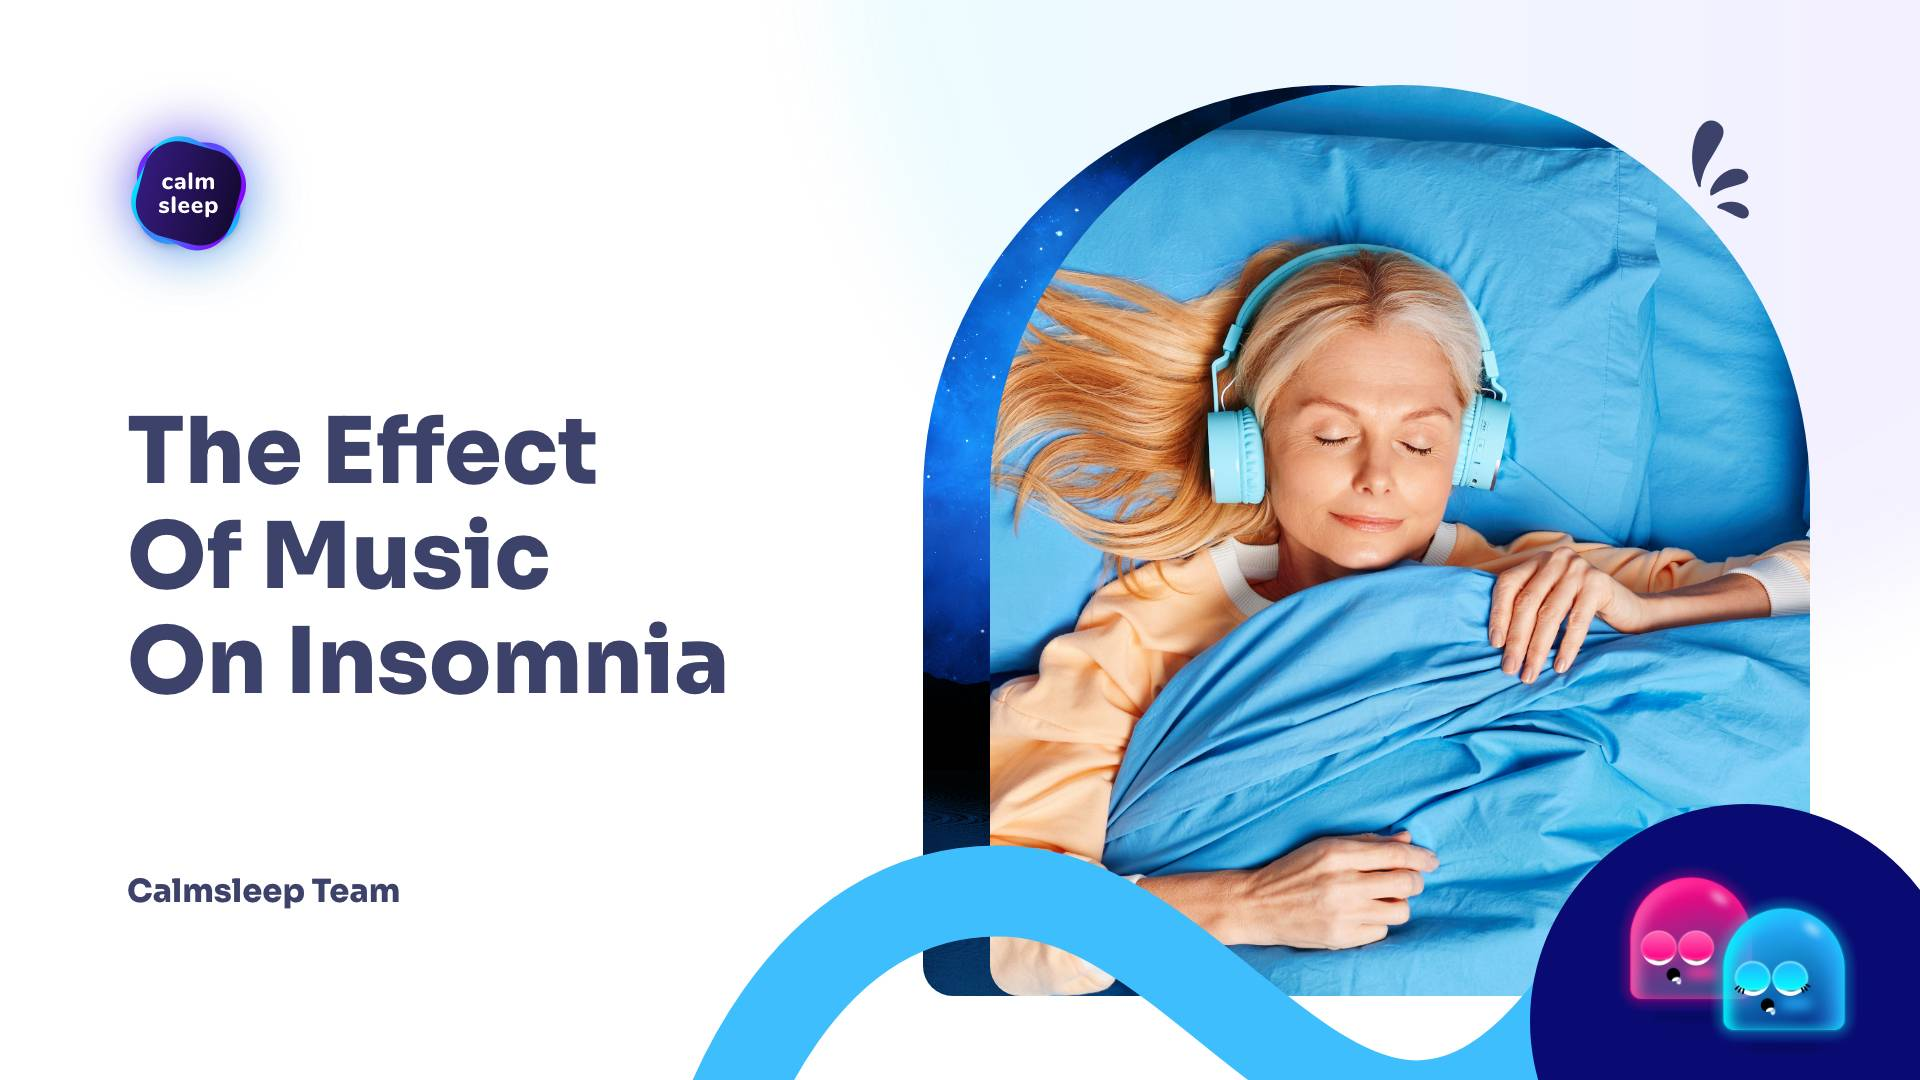 The Effect Of Music On Insomnia